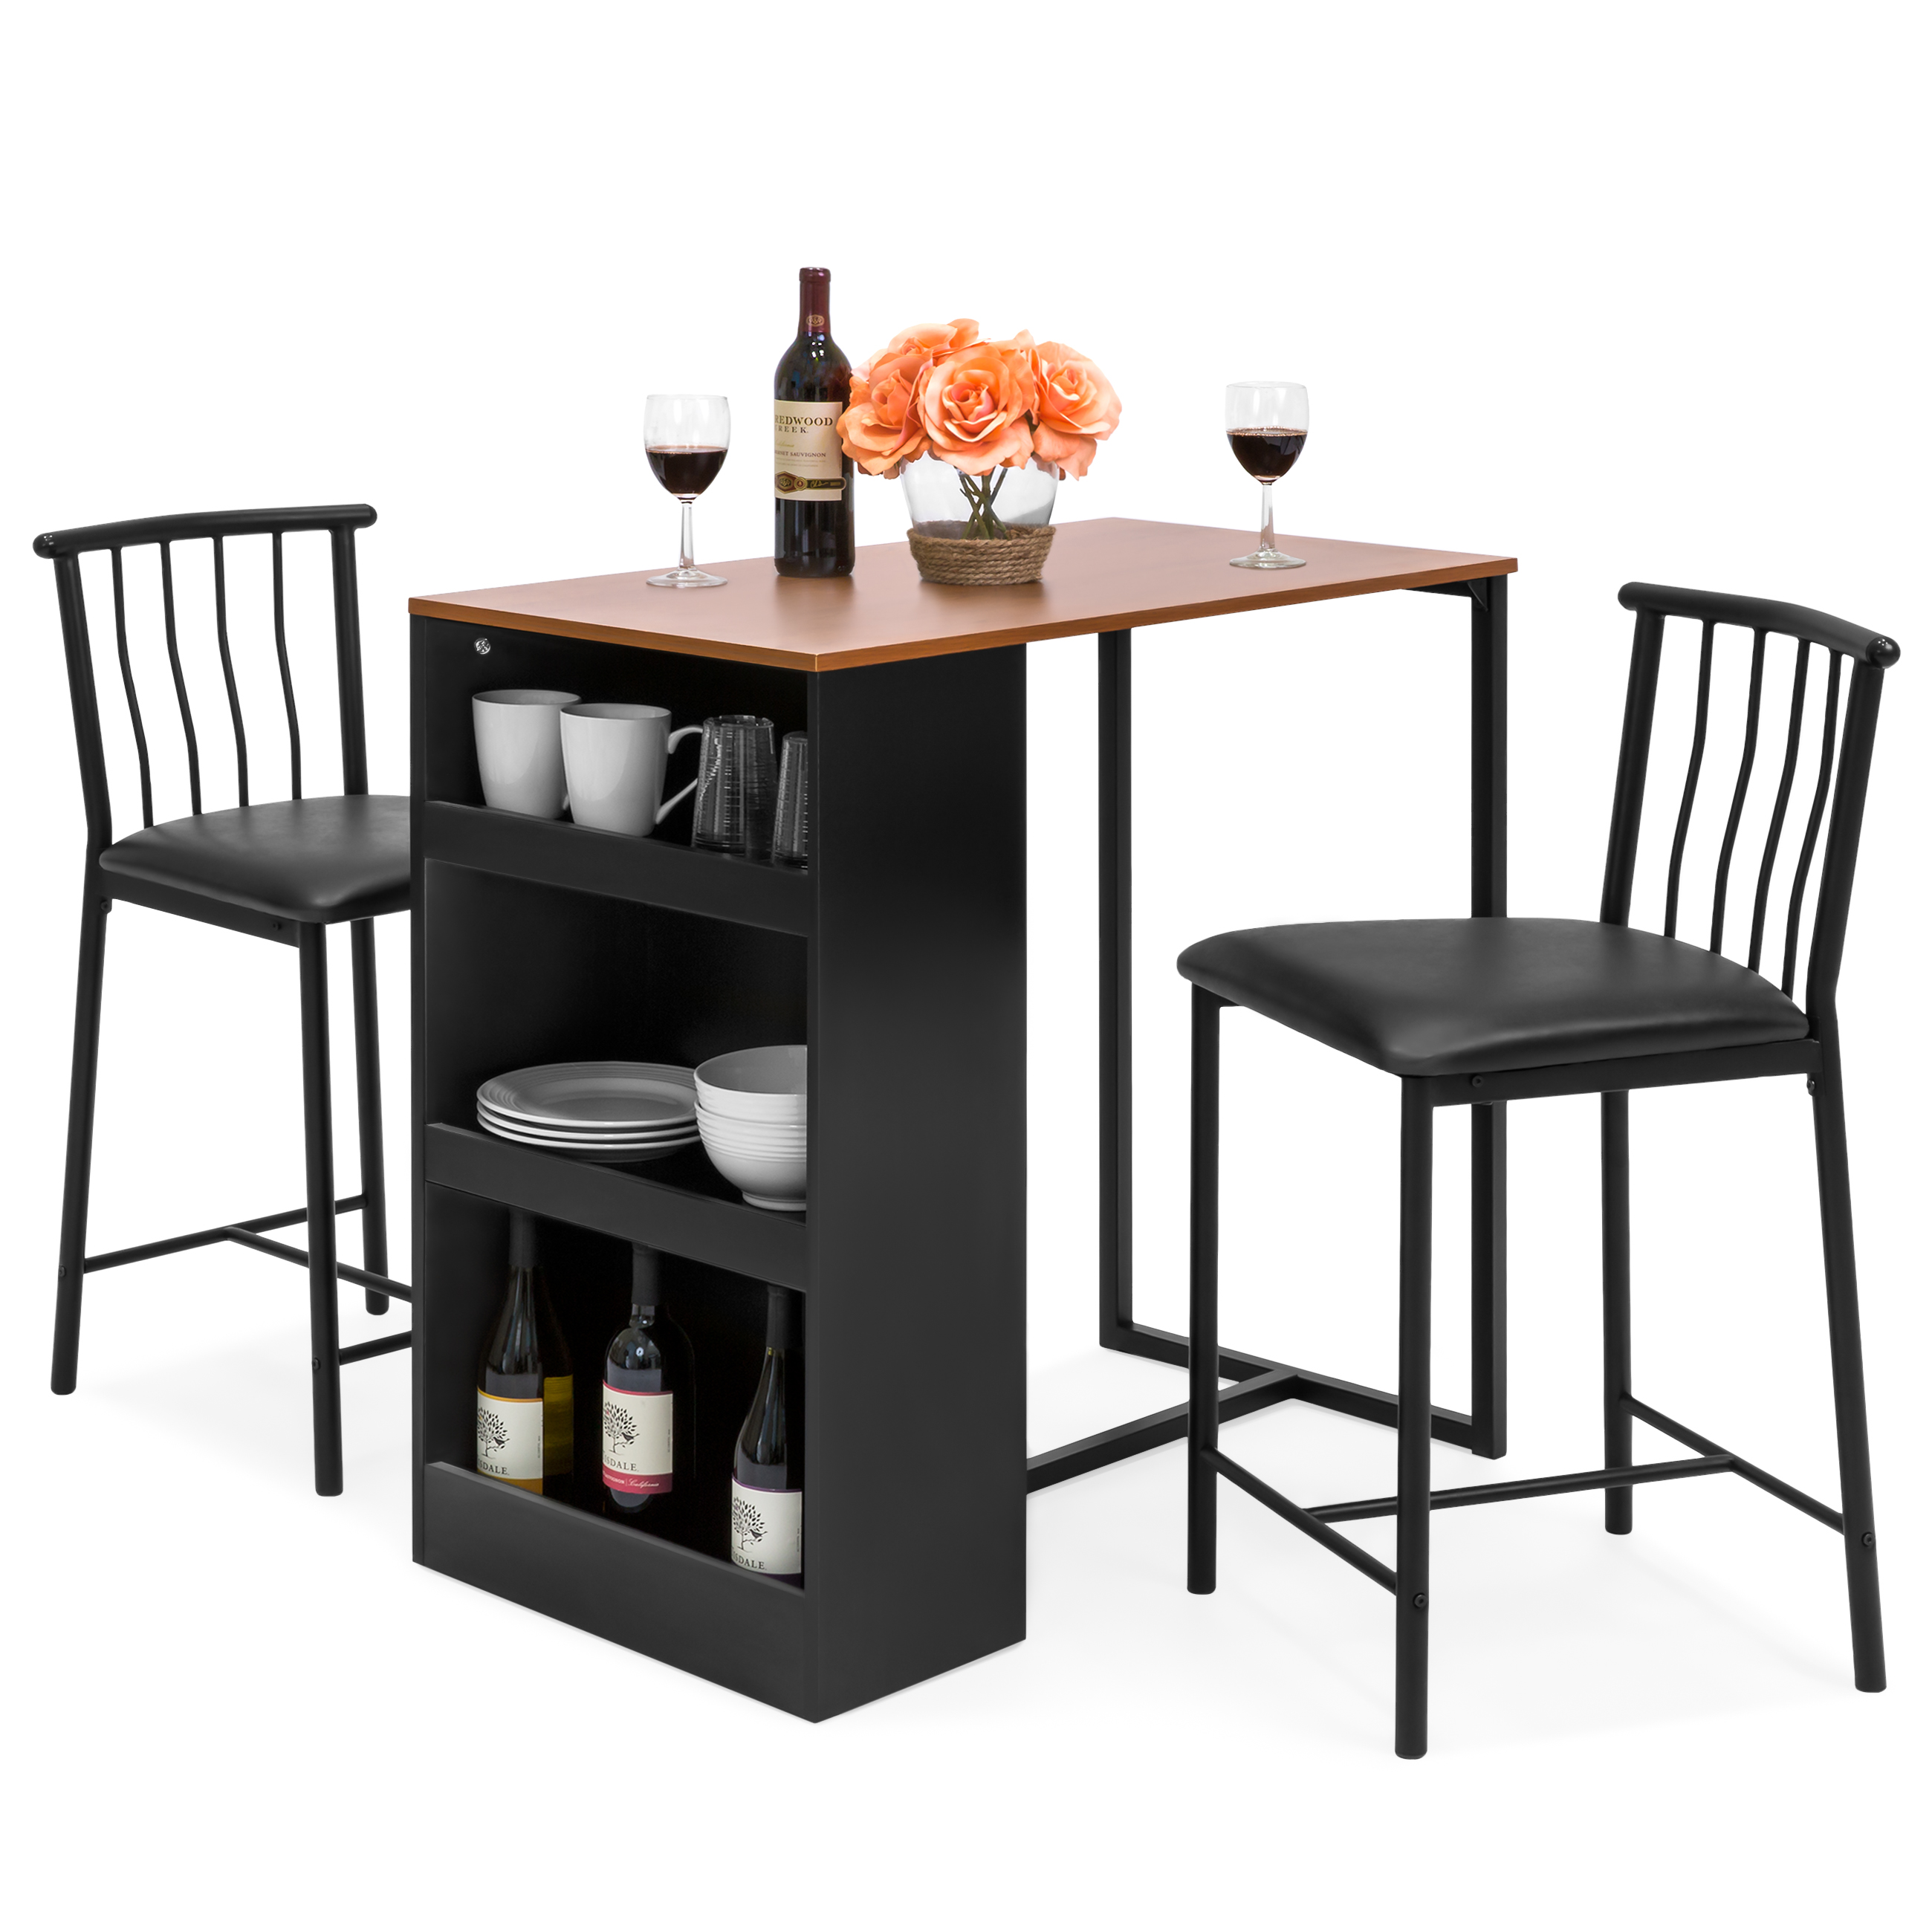 Best Choice Products 36 Inch Wooden Metal Kitchen Counter Height Dining  Table Set With 2 Stools